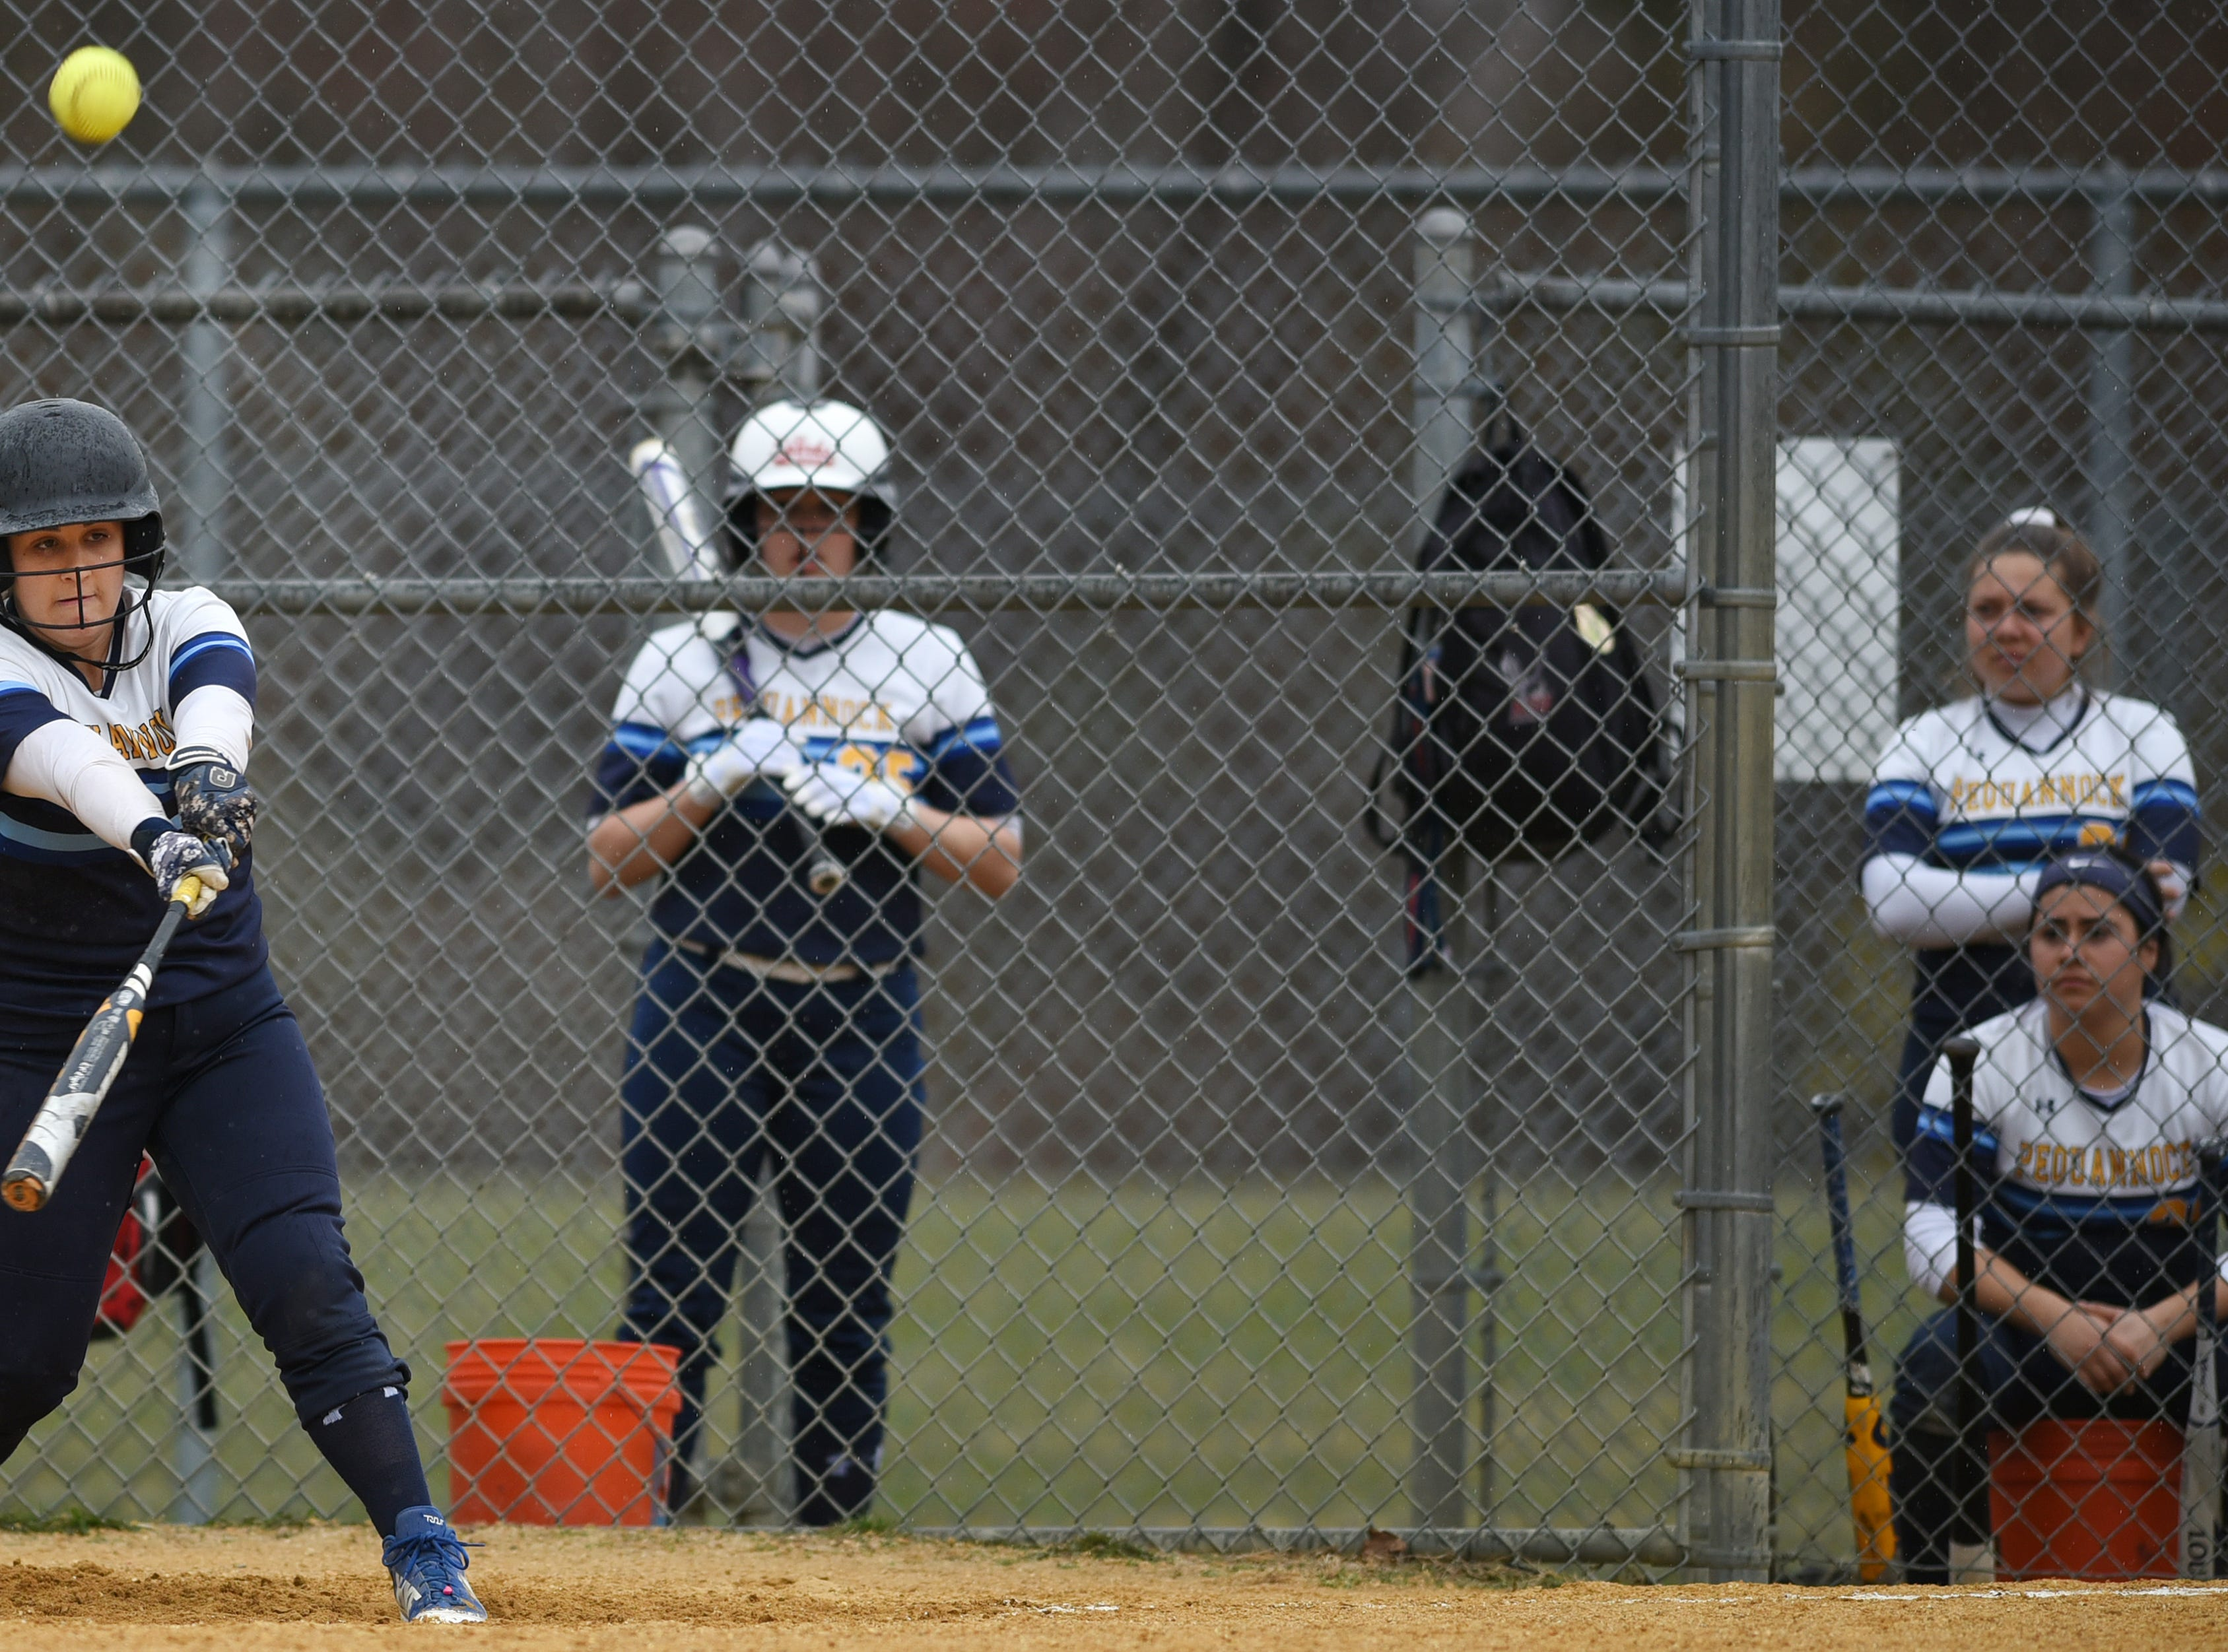 Pequannock at Kinnelon softball game in Kinnelon on Friday April 12, 2019. P#28 Shannon Wall hits the ball.